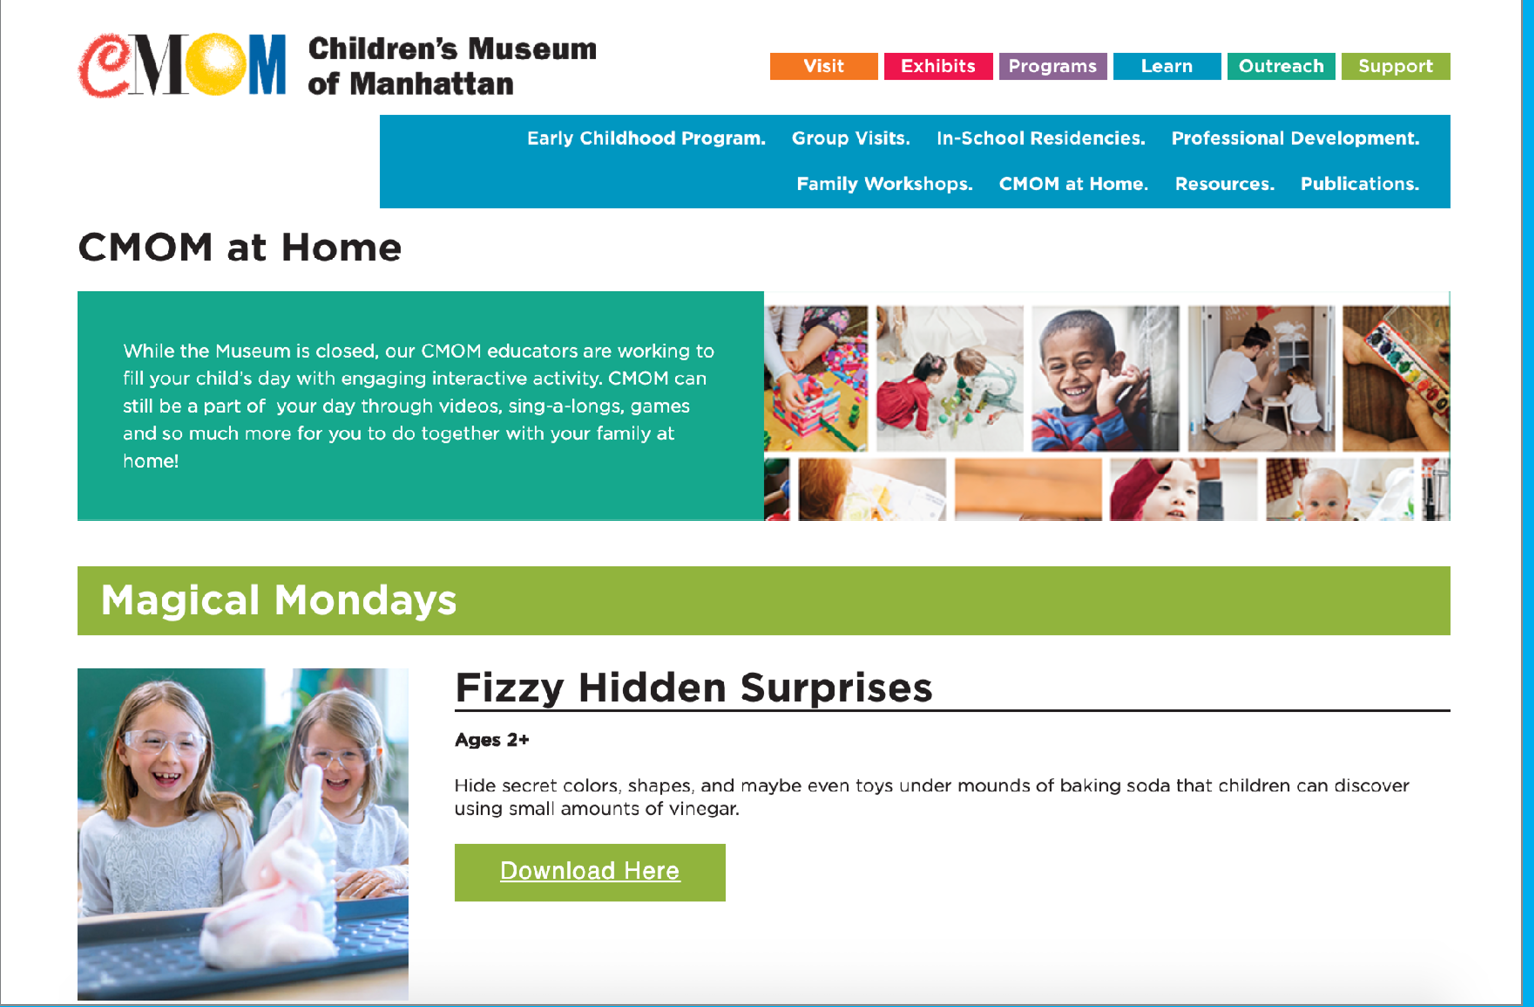 CMOM at Home from the Children's Museum of Manhattan